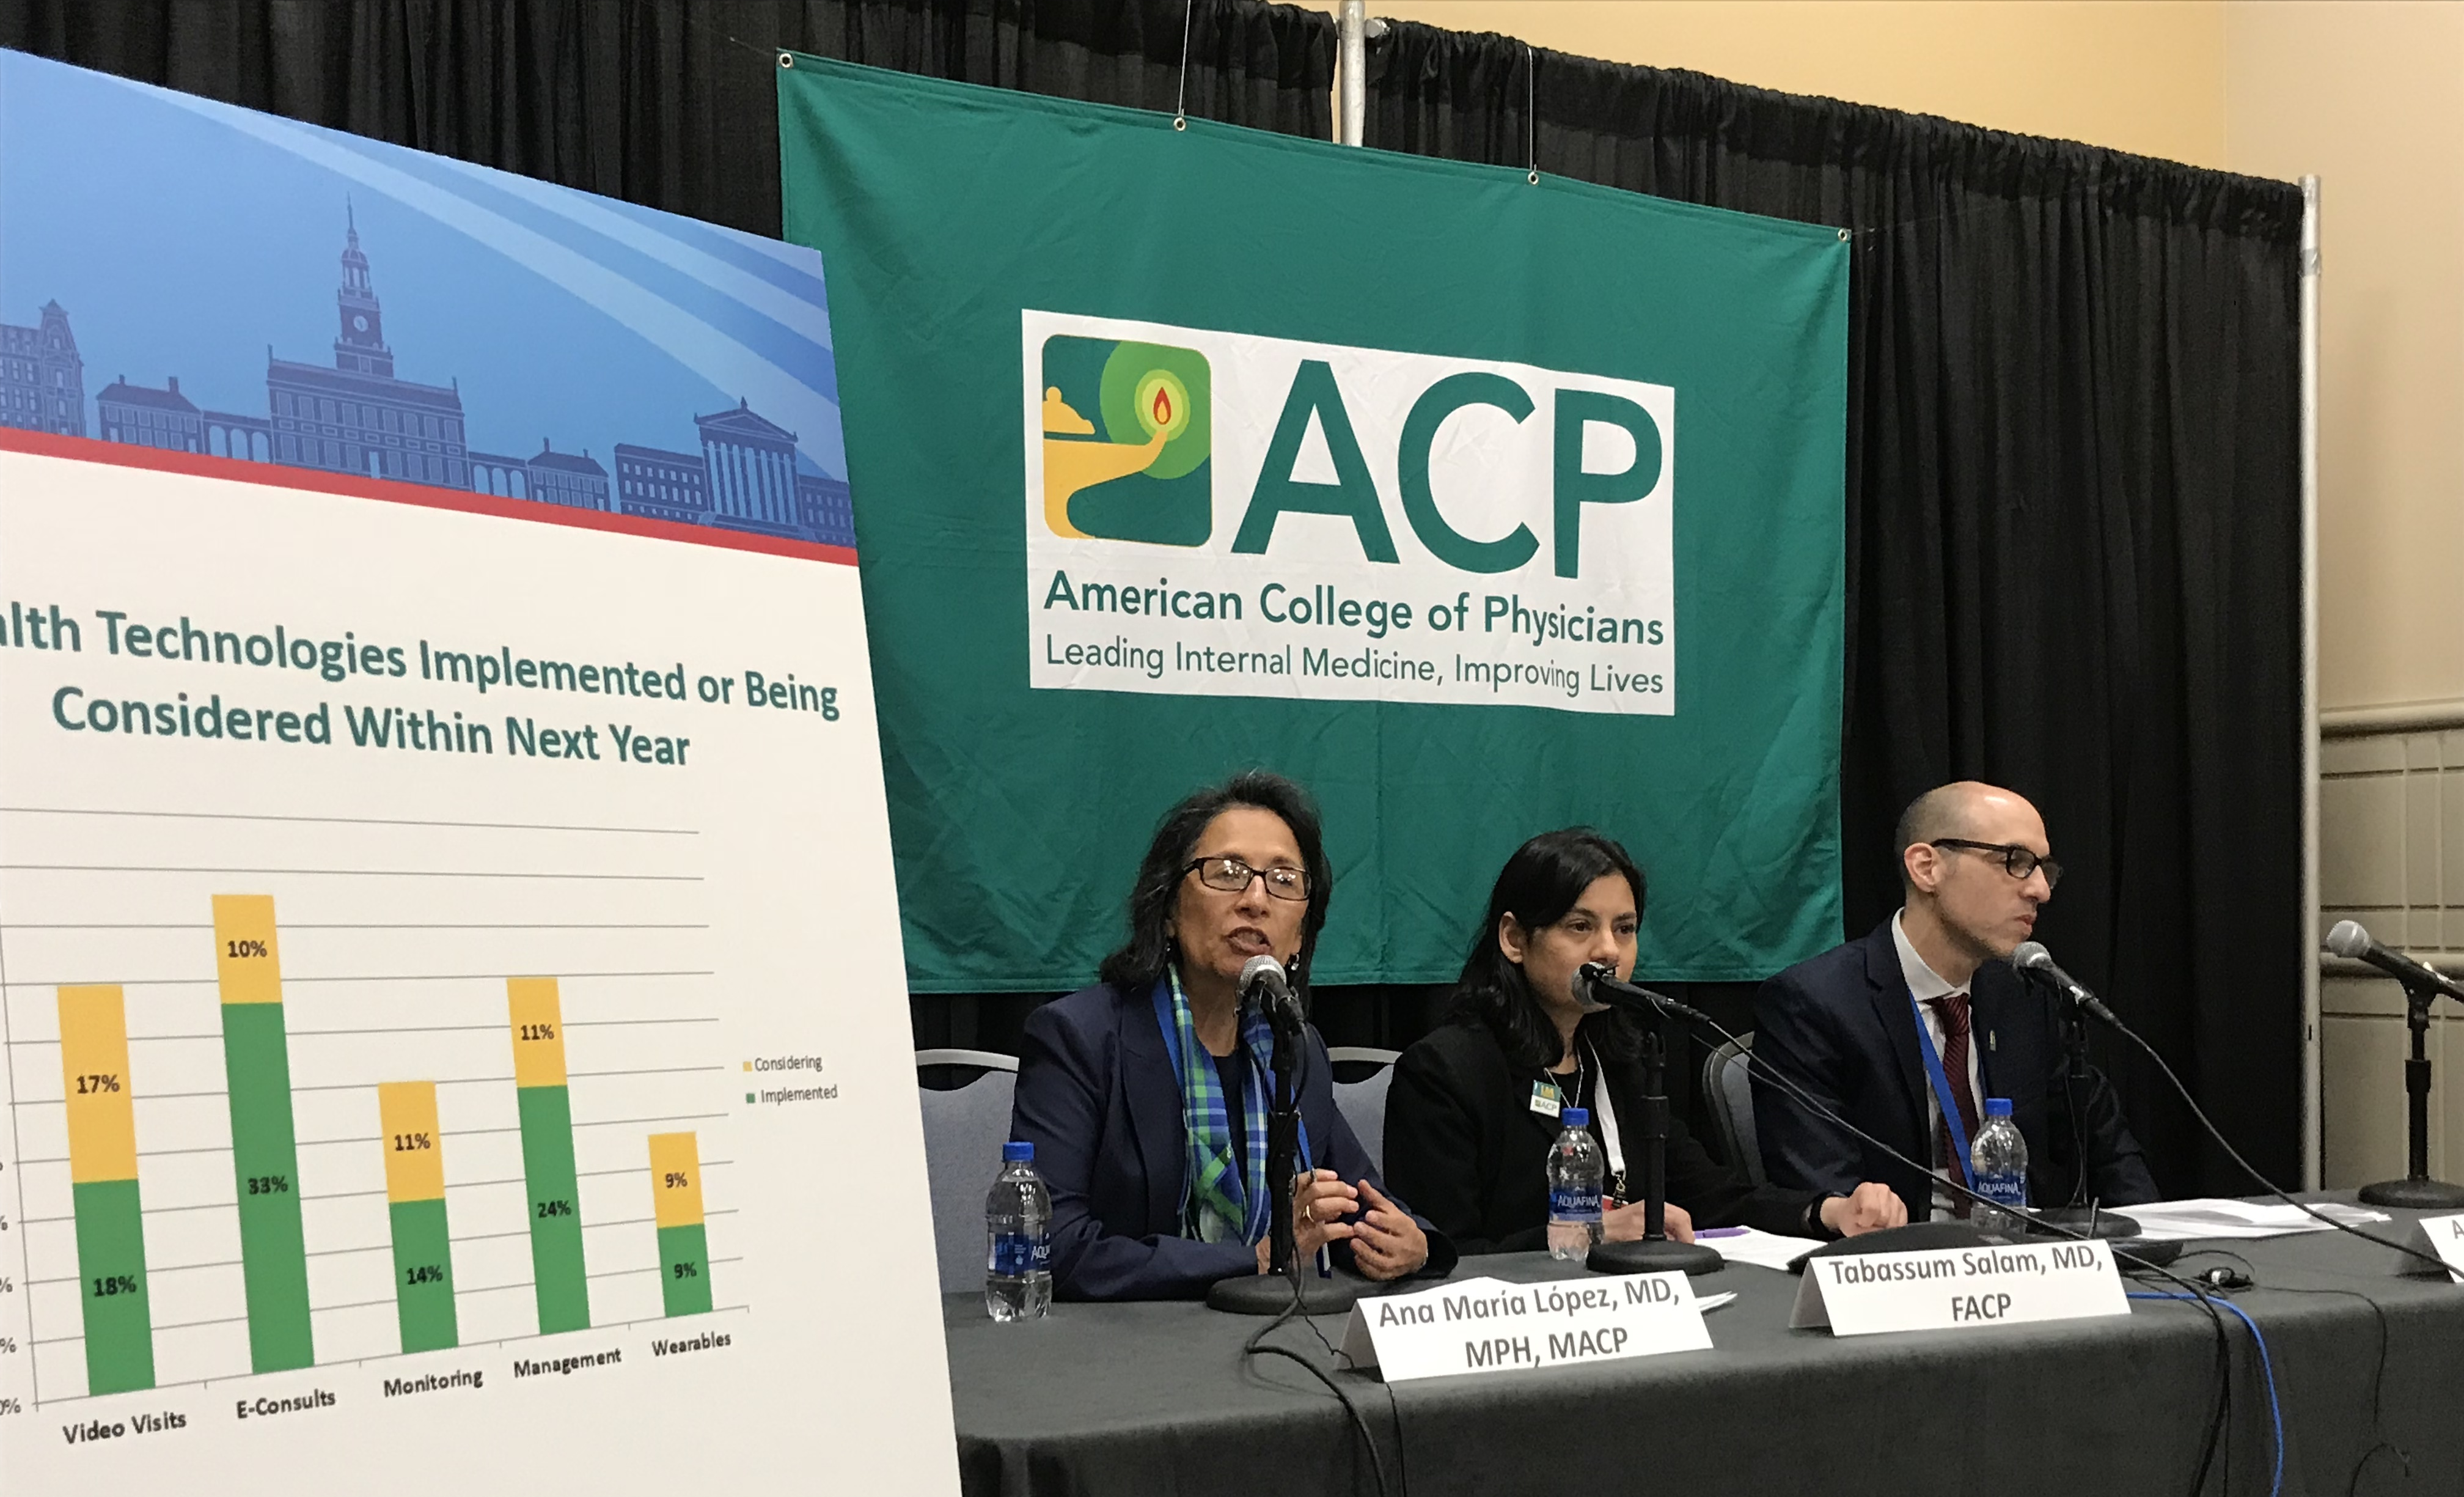 ACP survey shows physician interest in implementing telehealth